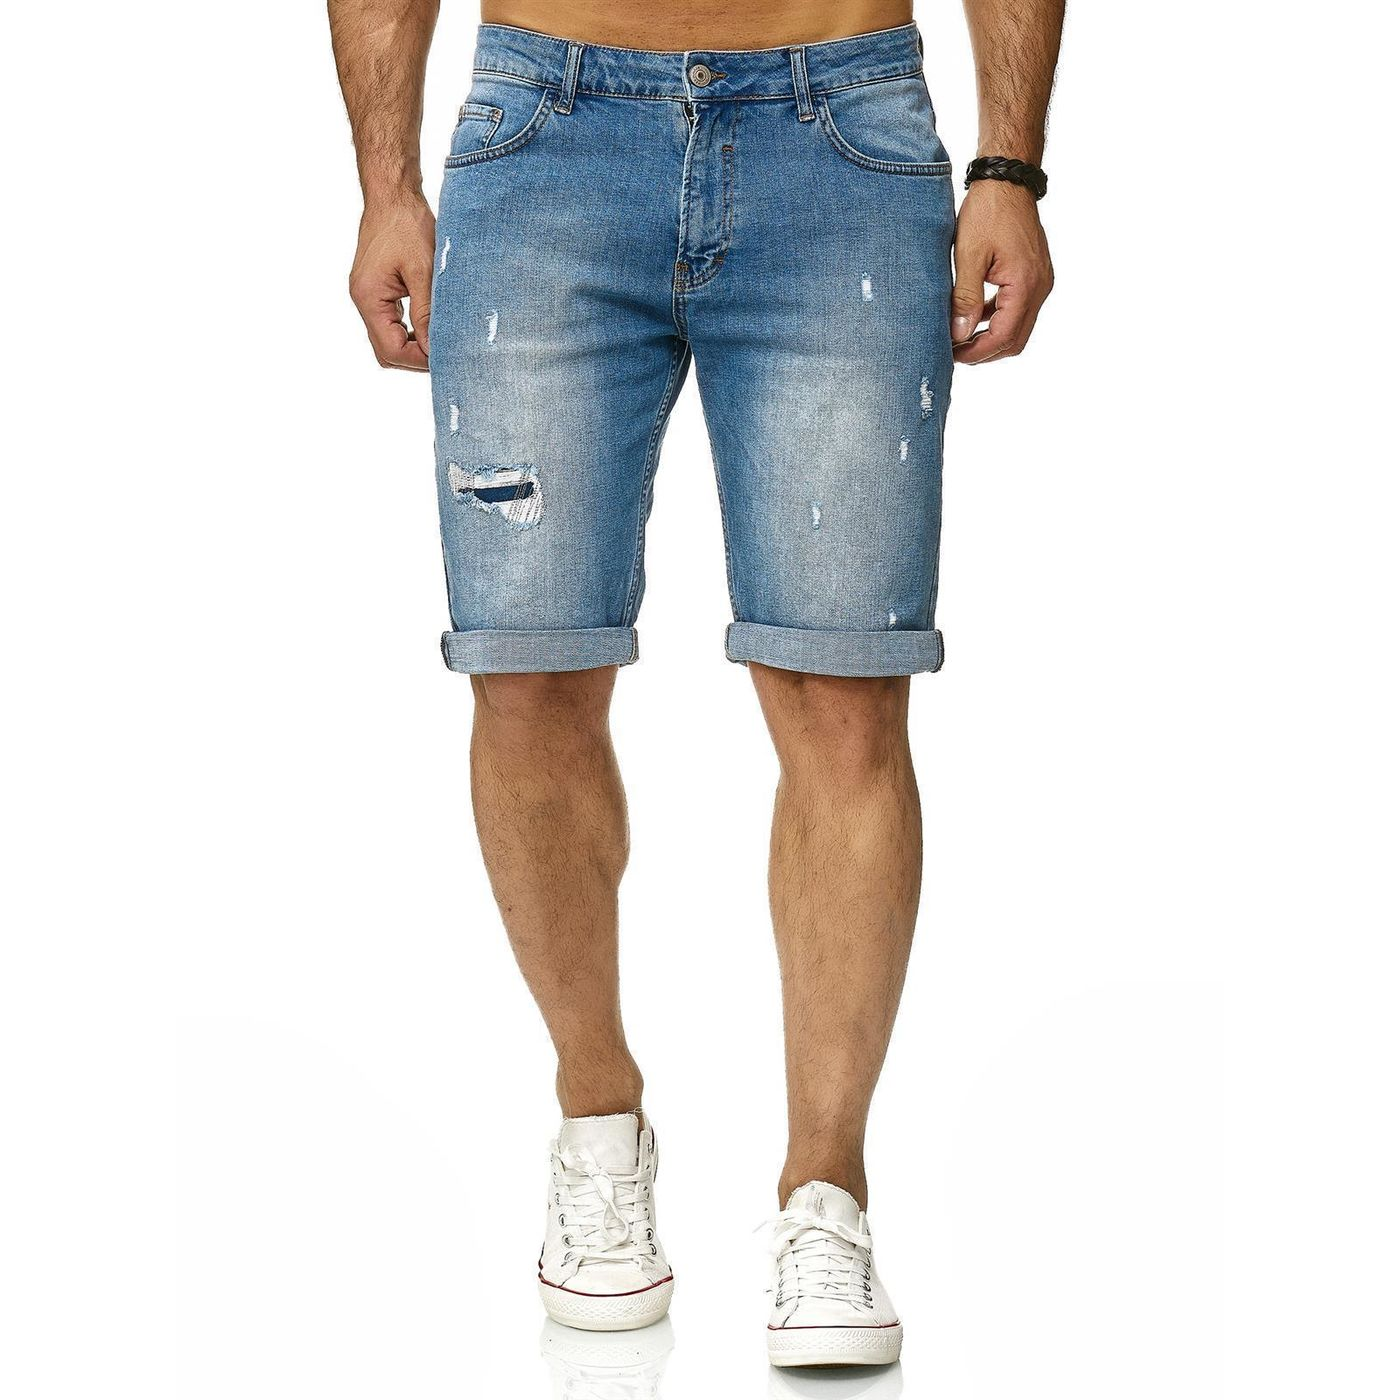 Jeans Distressed Red Hose Denim Bridge Capri Kurze Herren Shorts PXOTkuZi